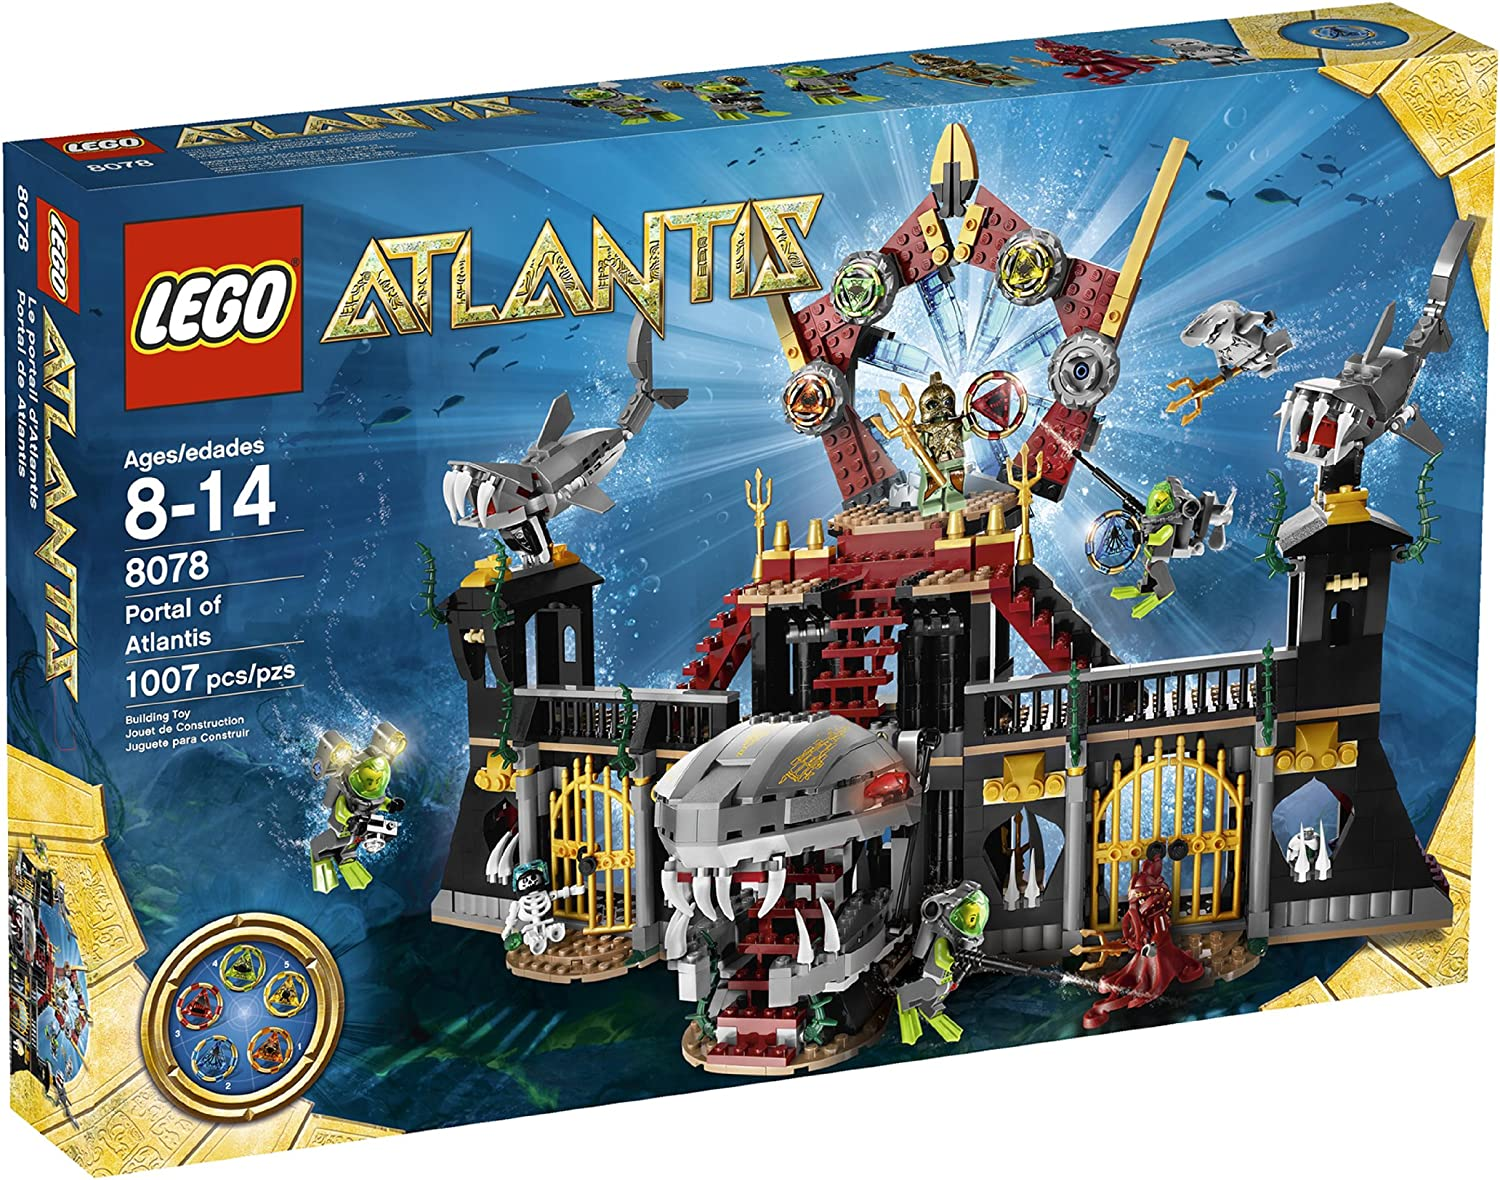 Top 9 Best LEGO Atlantis Sets Reviews in 2020 5